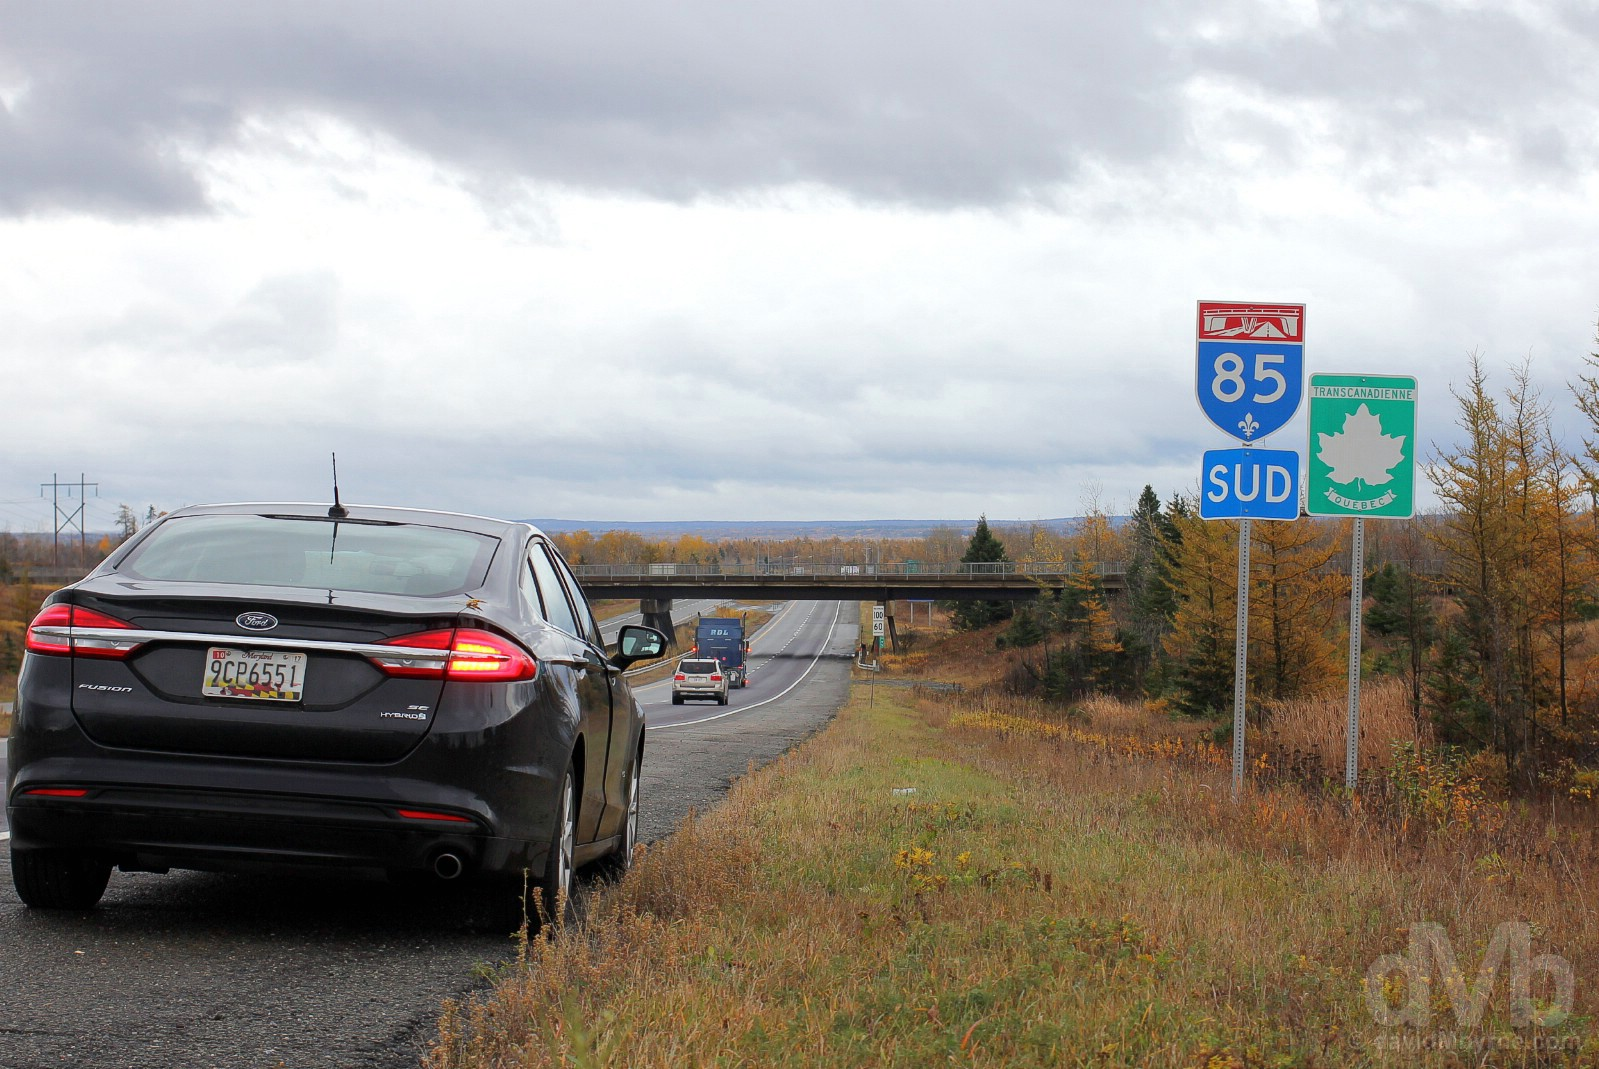 Heading south on Autoroute 85/the Trans-Canada Highway in Quebec, Canada. October 25, 2017.